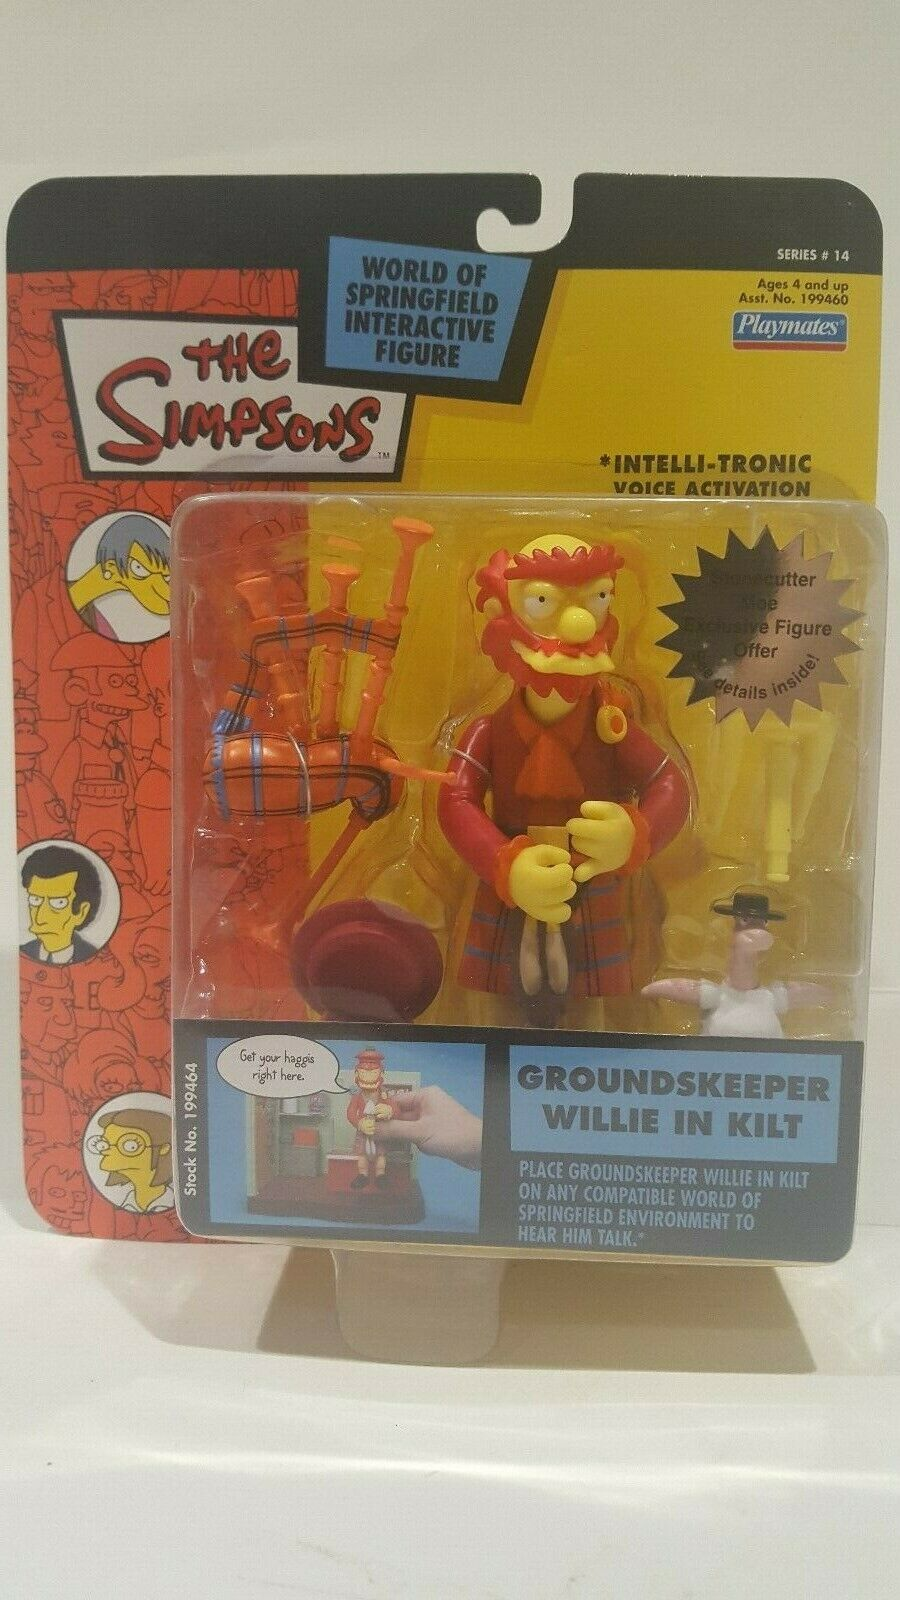 THE SIMPSONS WORLD OF SPRINGFIELD GROUNDSKEEPER WILLIE IN KILT INTERACTIVE FIG.